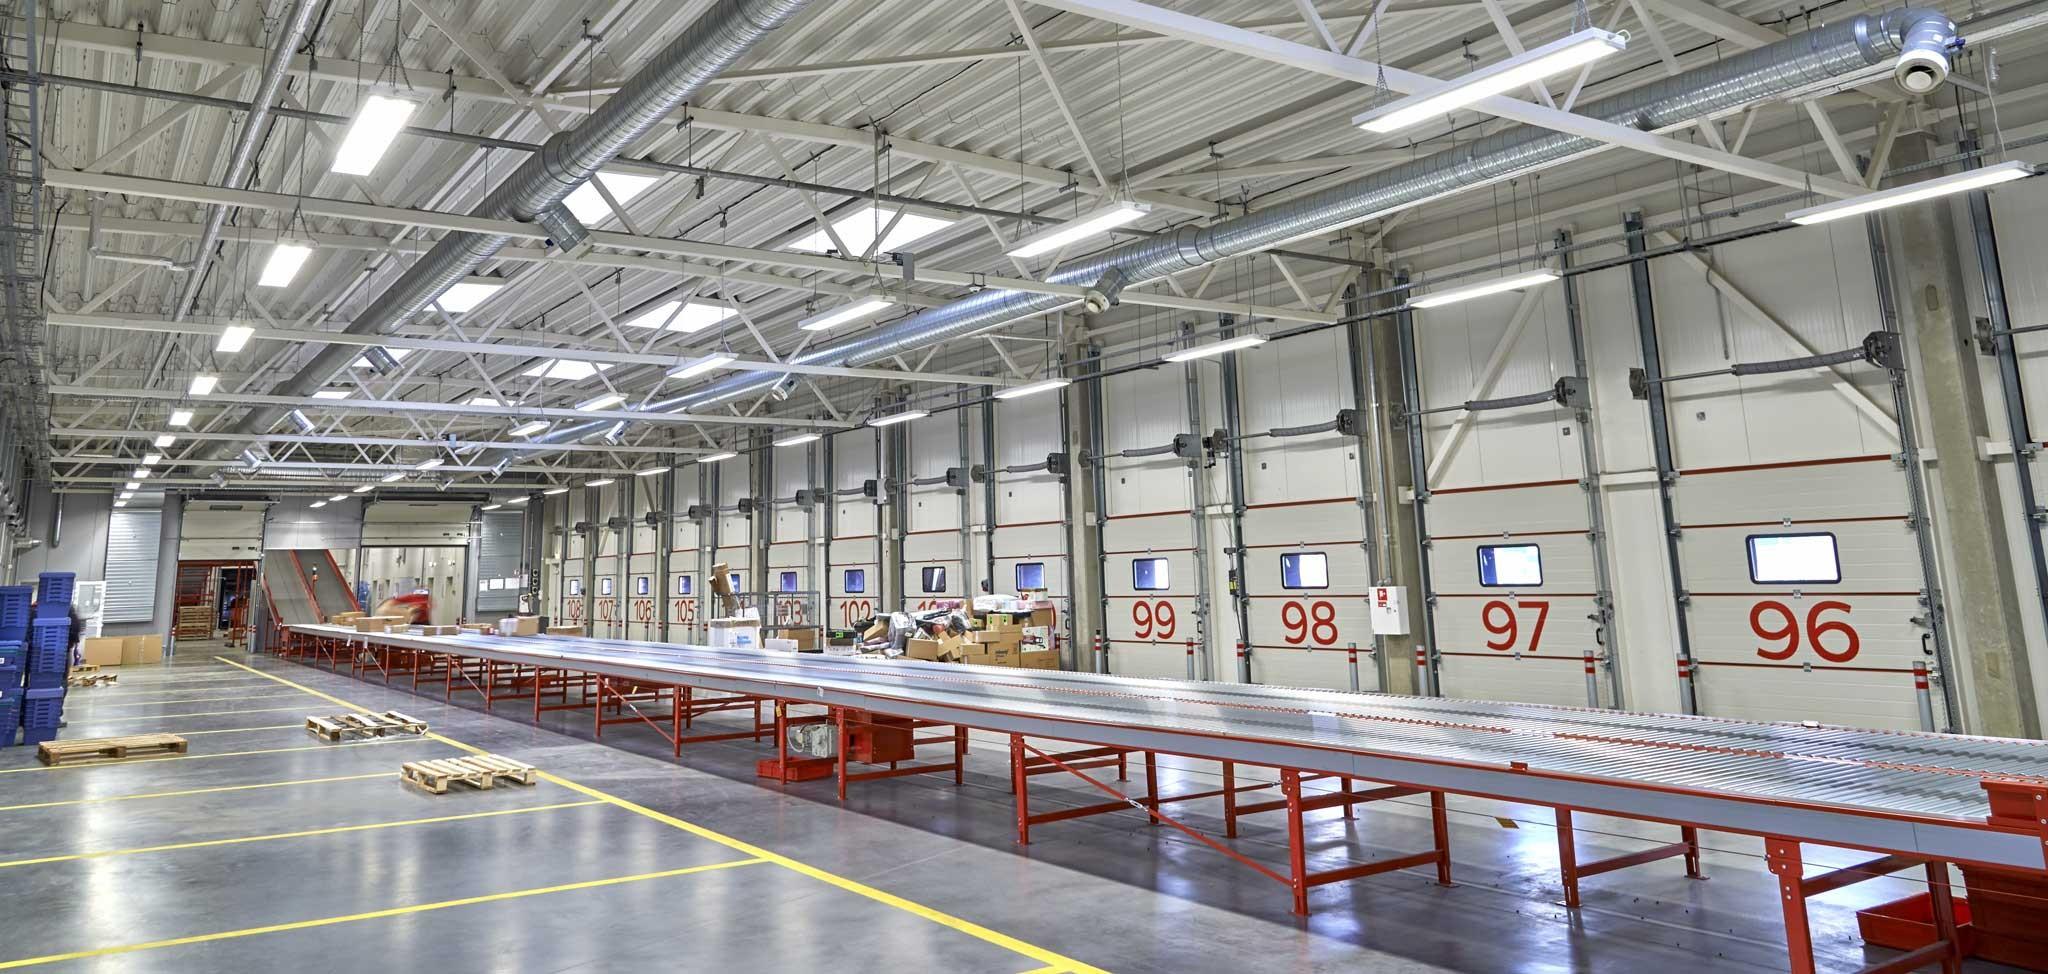 DPD Lietuva parcel sorting facility in Kaunas, Lithuania